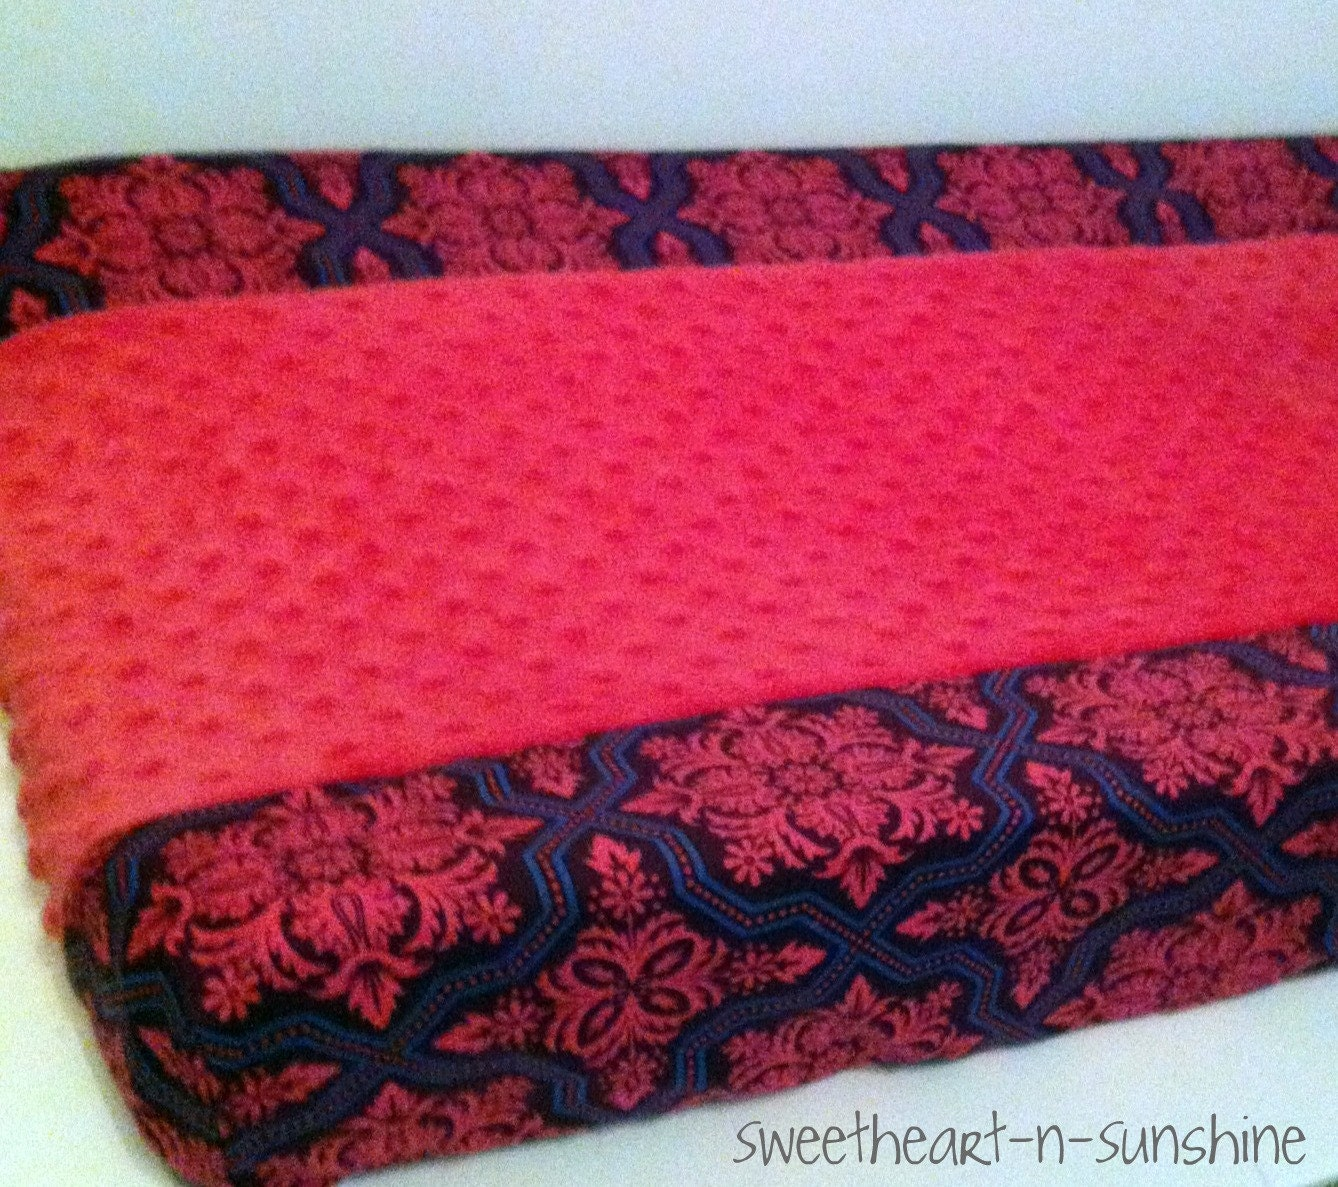 CUSTOM Two-toned Contoured Changing Pad Cover in YOUR CHOICE of designer cotton and minky dot fabrics